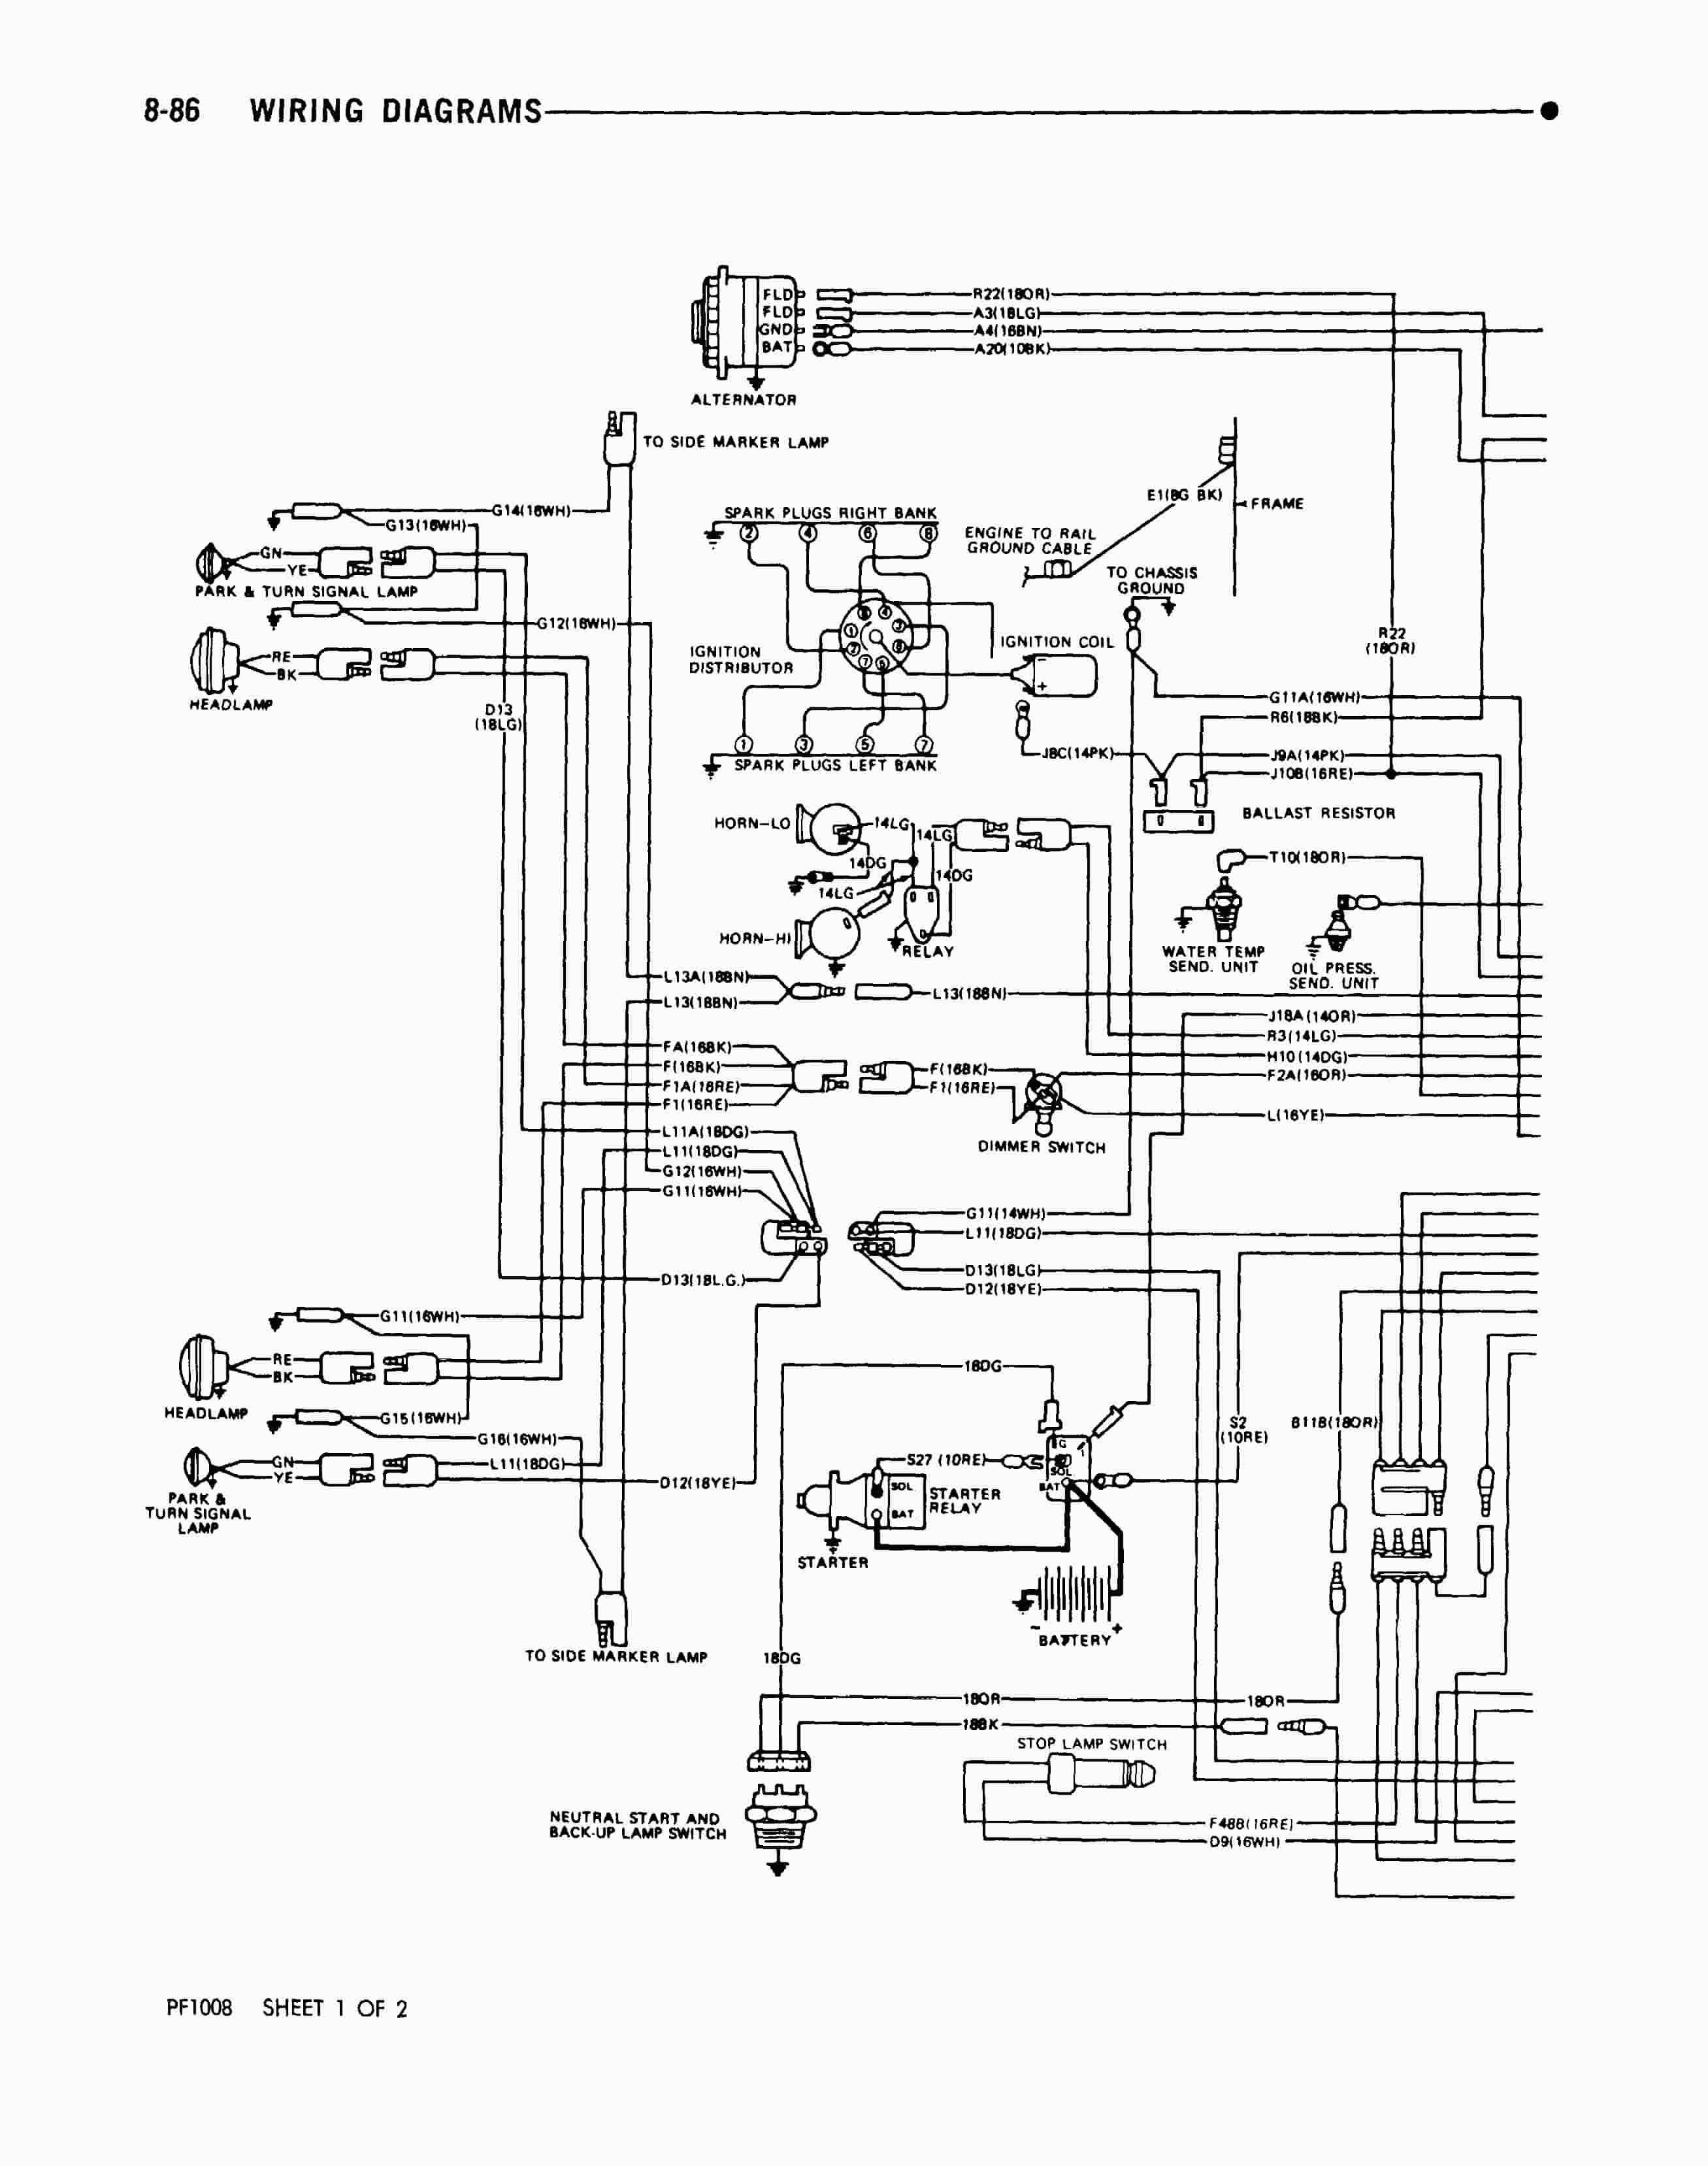 Htc Hd2 Wiring Diagram